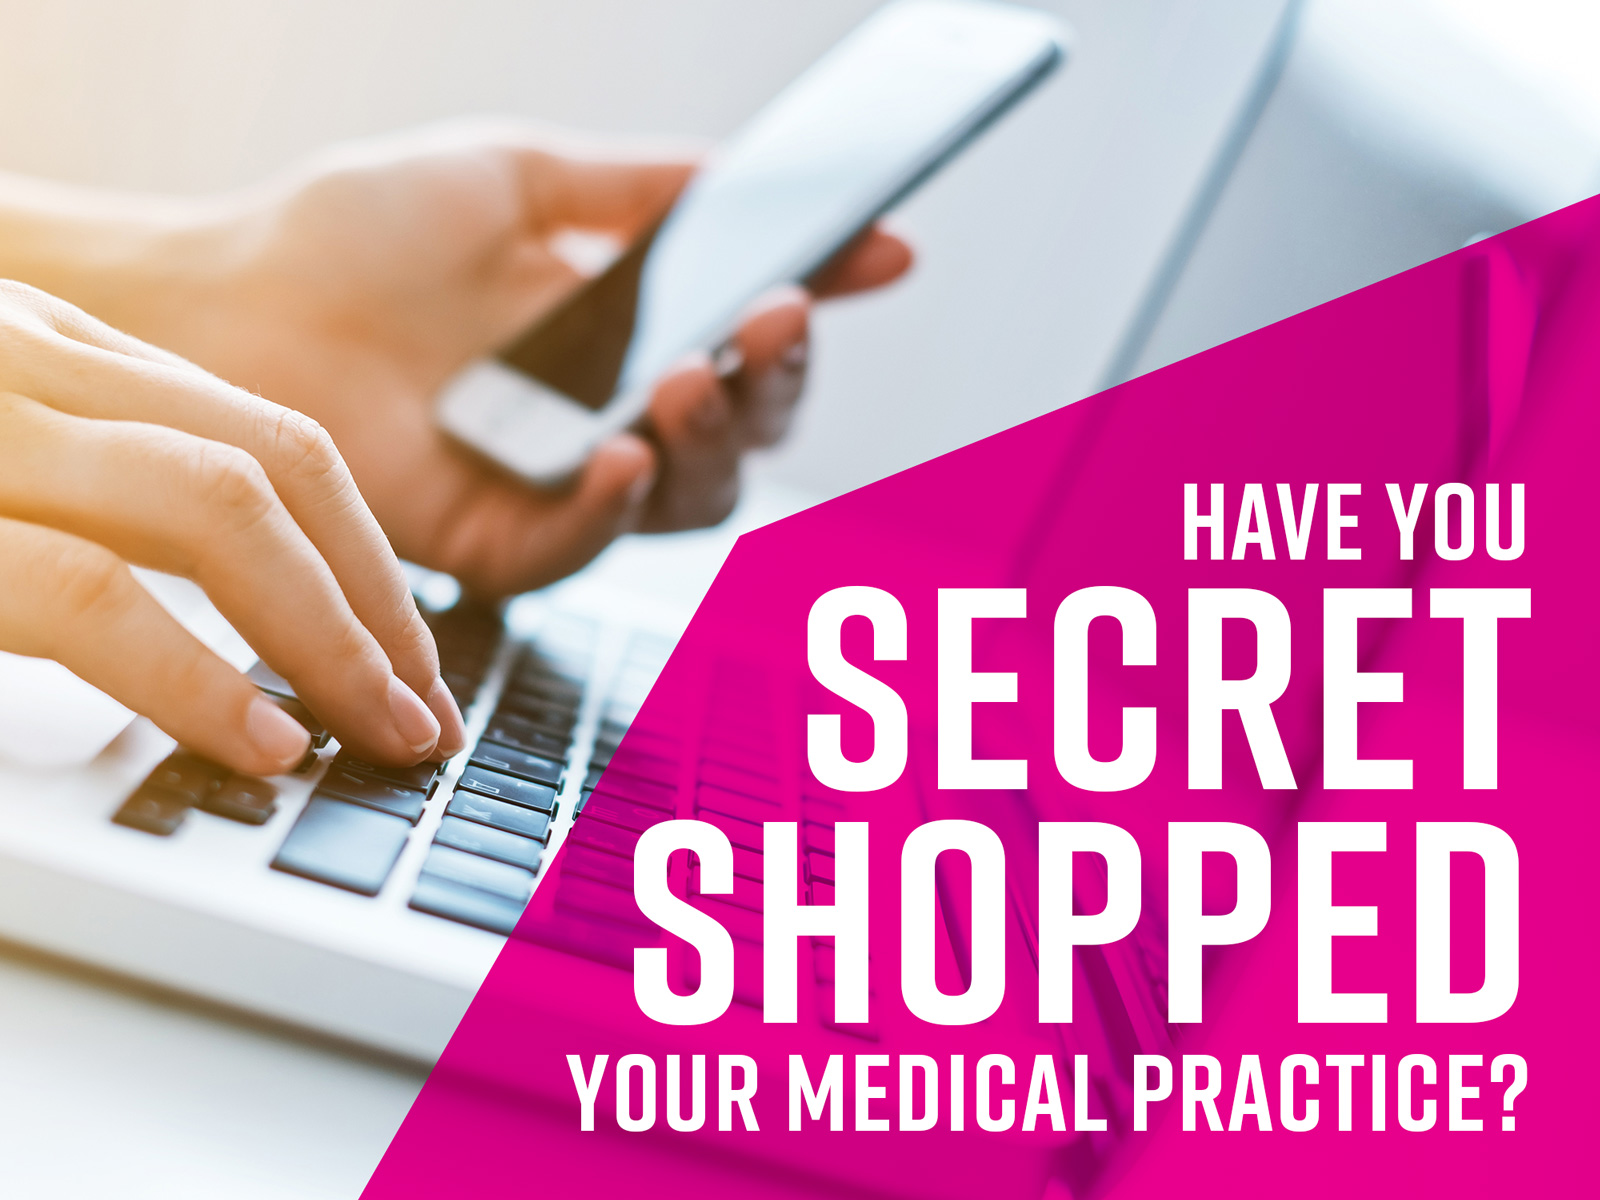 have-you-secret-shopped-your-medical-practice